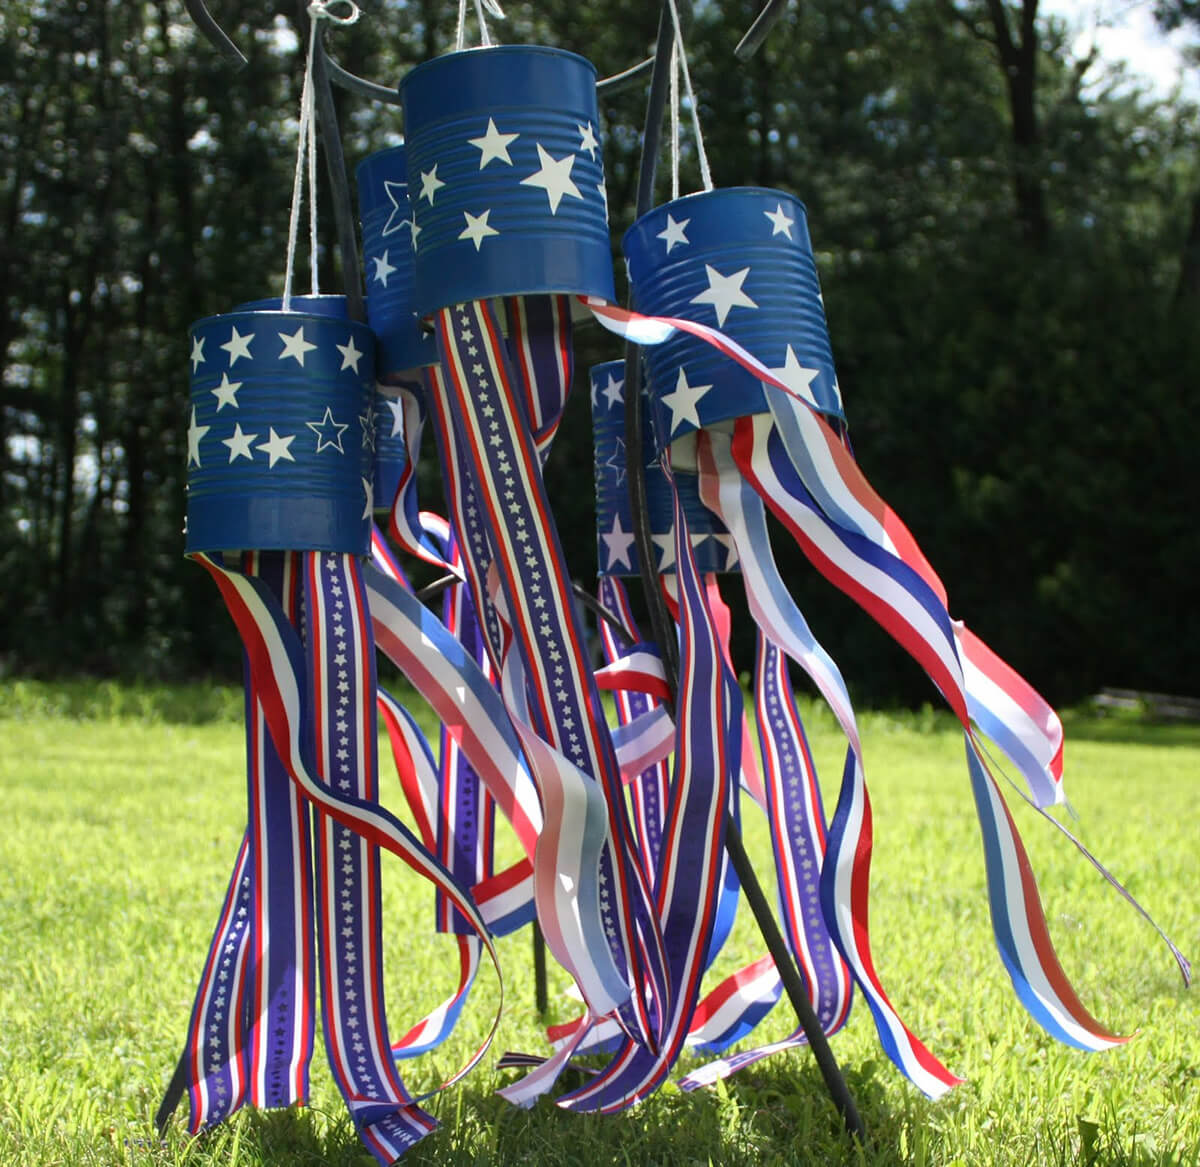 Tin Can Wind Socks as DIY Rustic 4th of July Decorations